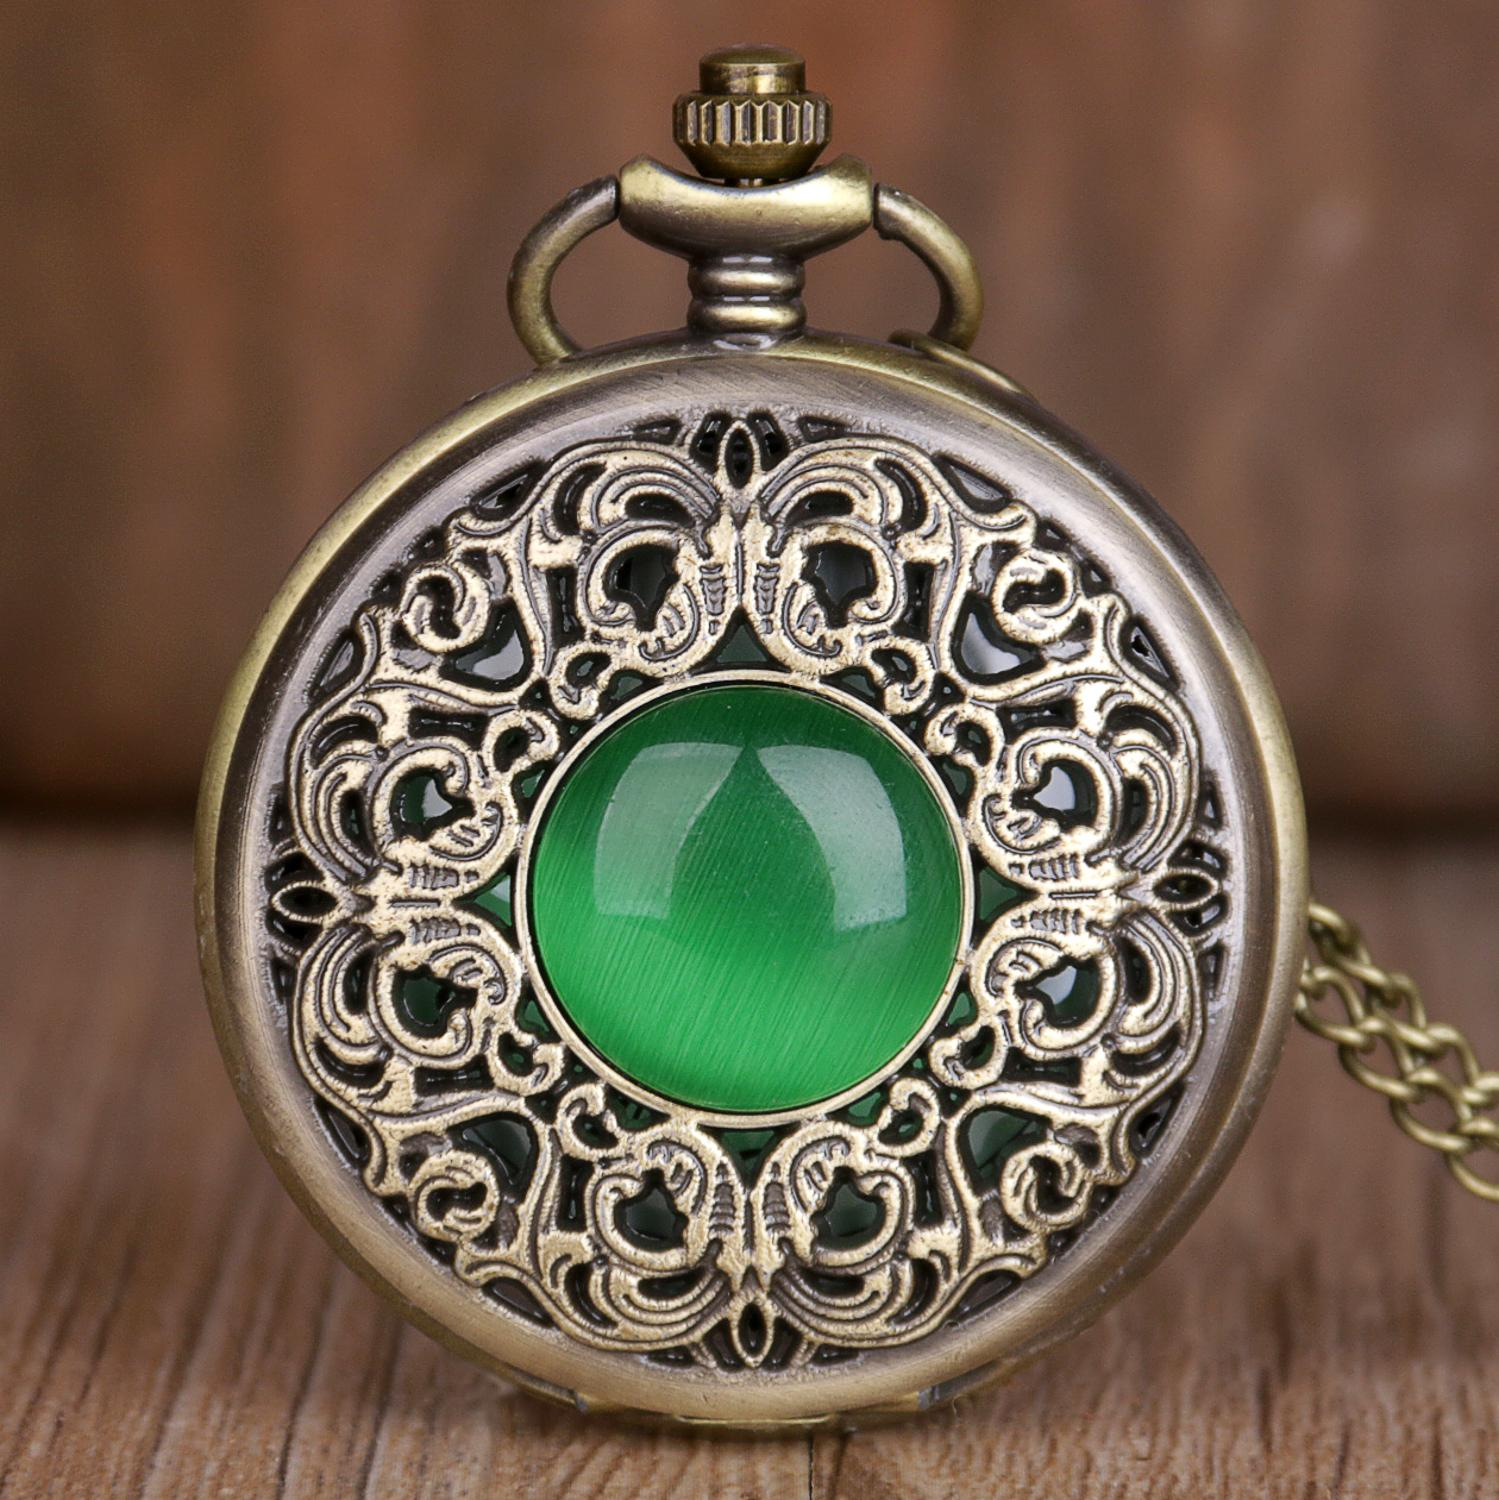 New Vintage Pocket Watches Green Crystal Emerald Imitation Stone Design Quartz Pocket Watches Necklace Chain For Mens Womens